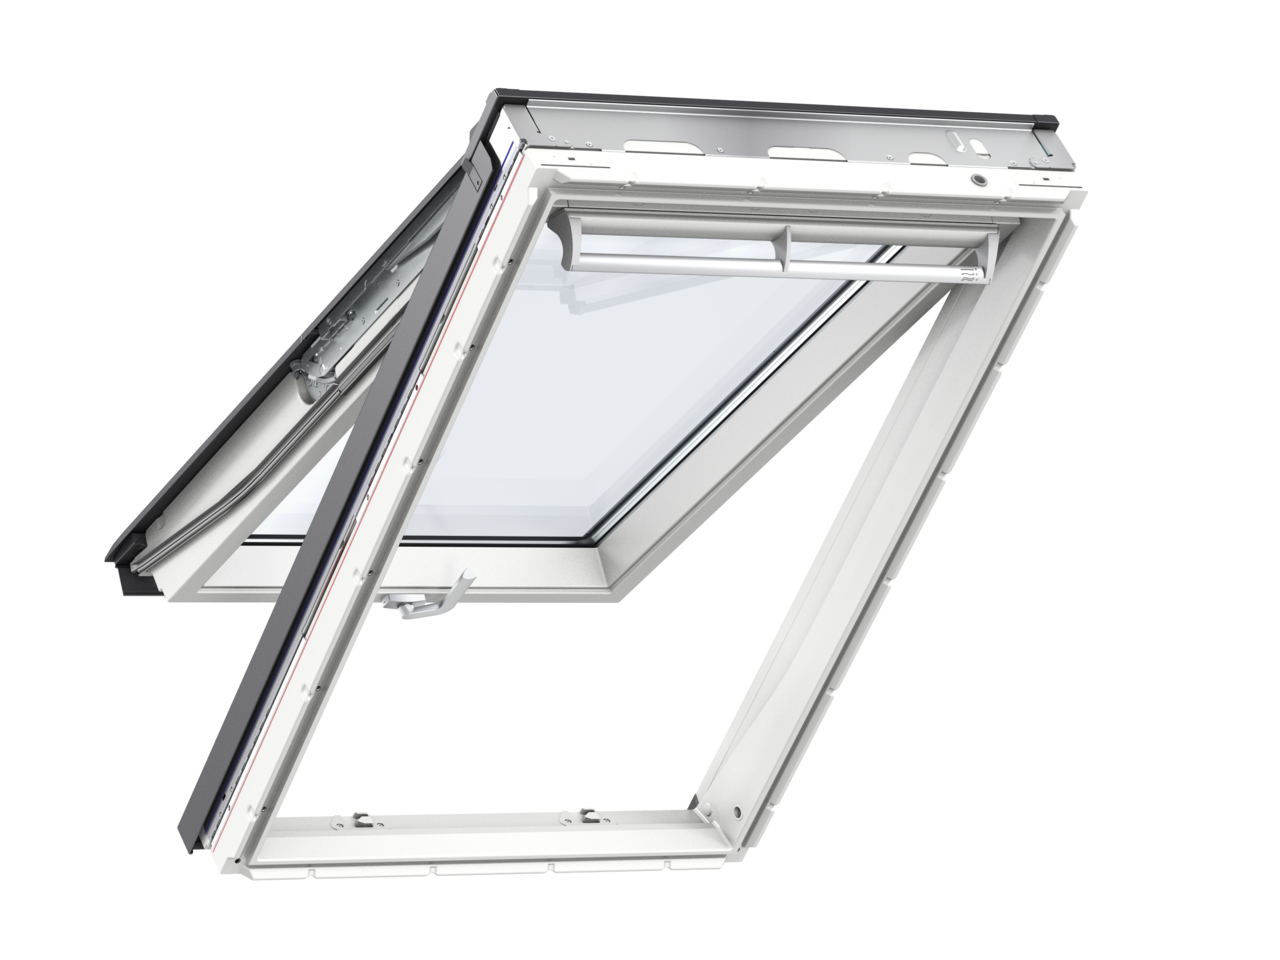 Velux GPU MK08 780 x 1400mm Top Hung 66Pane Roof Window - White Polyurethane